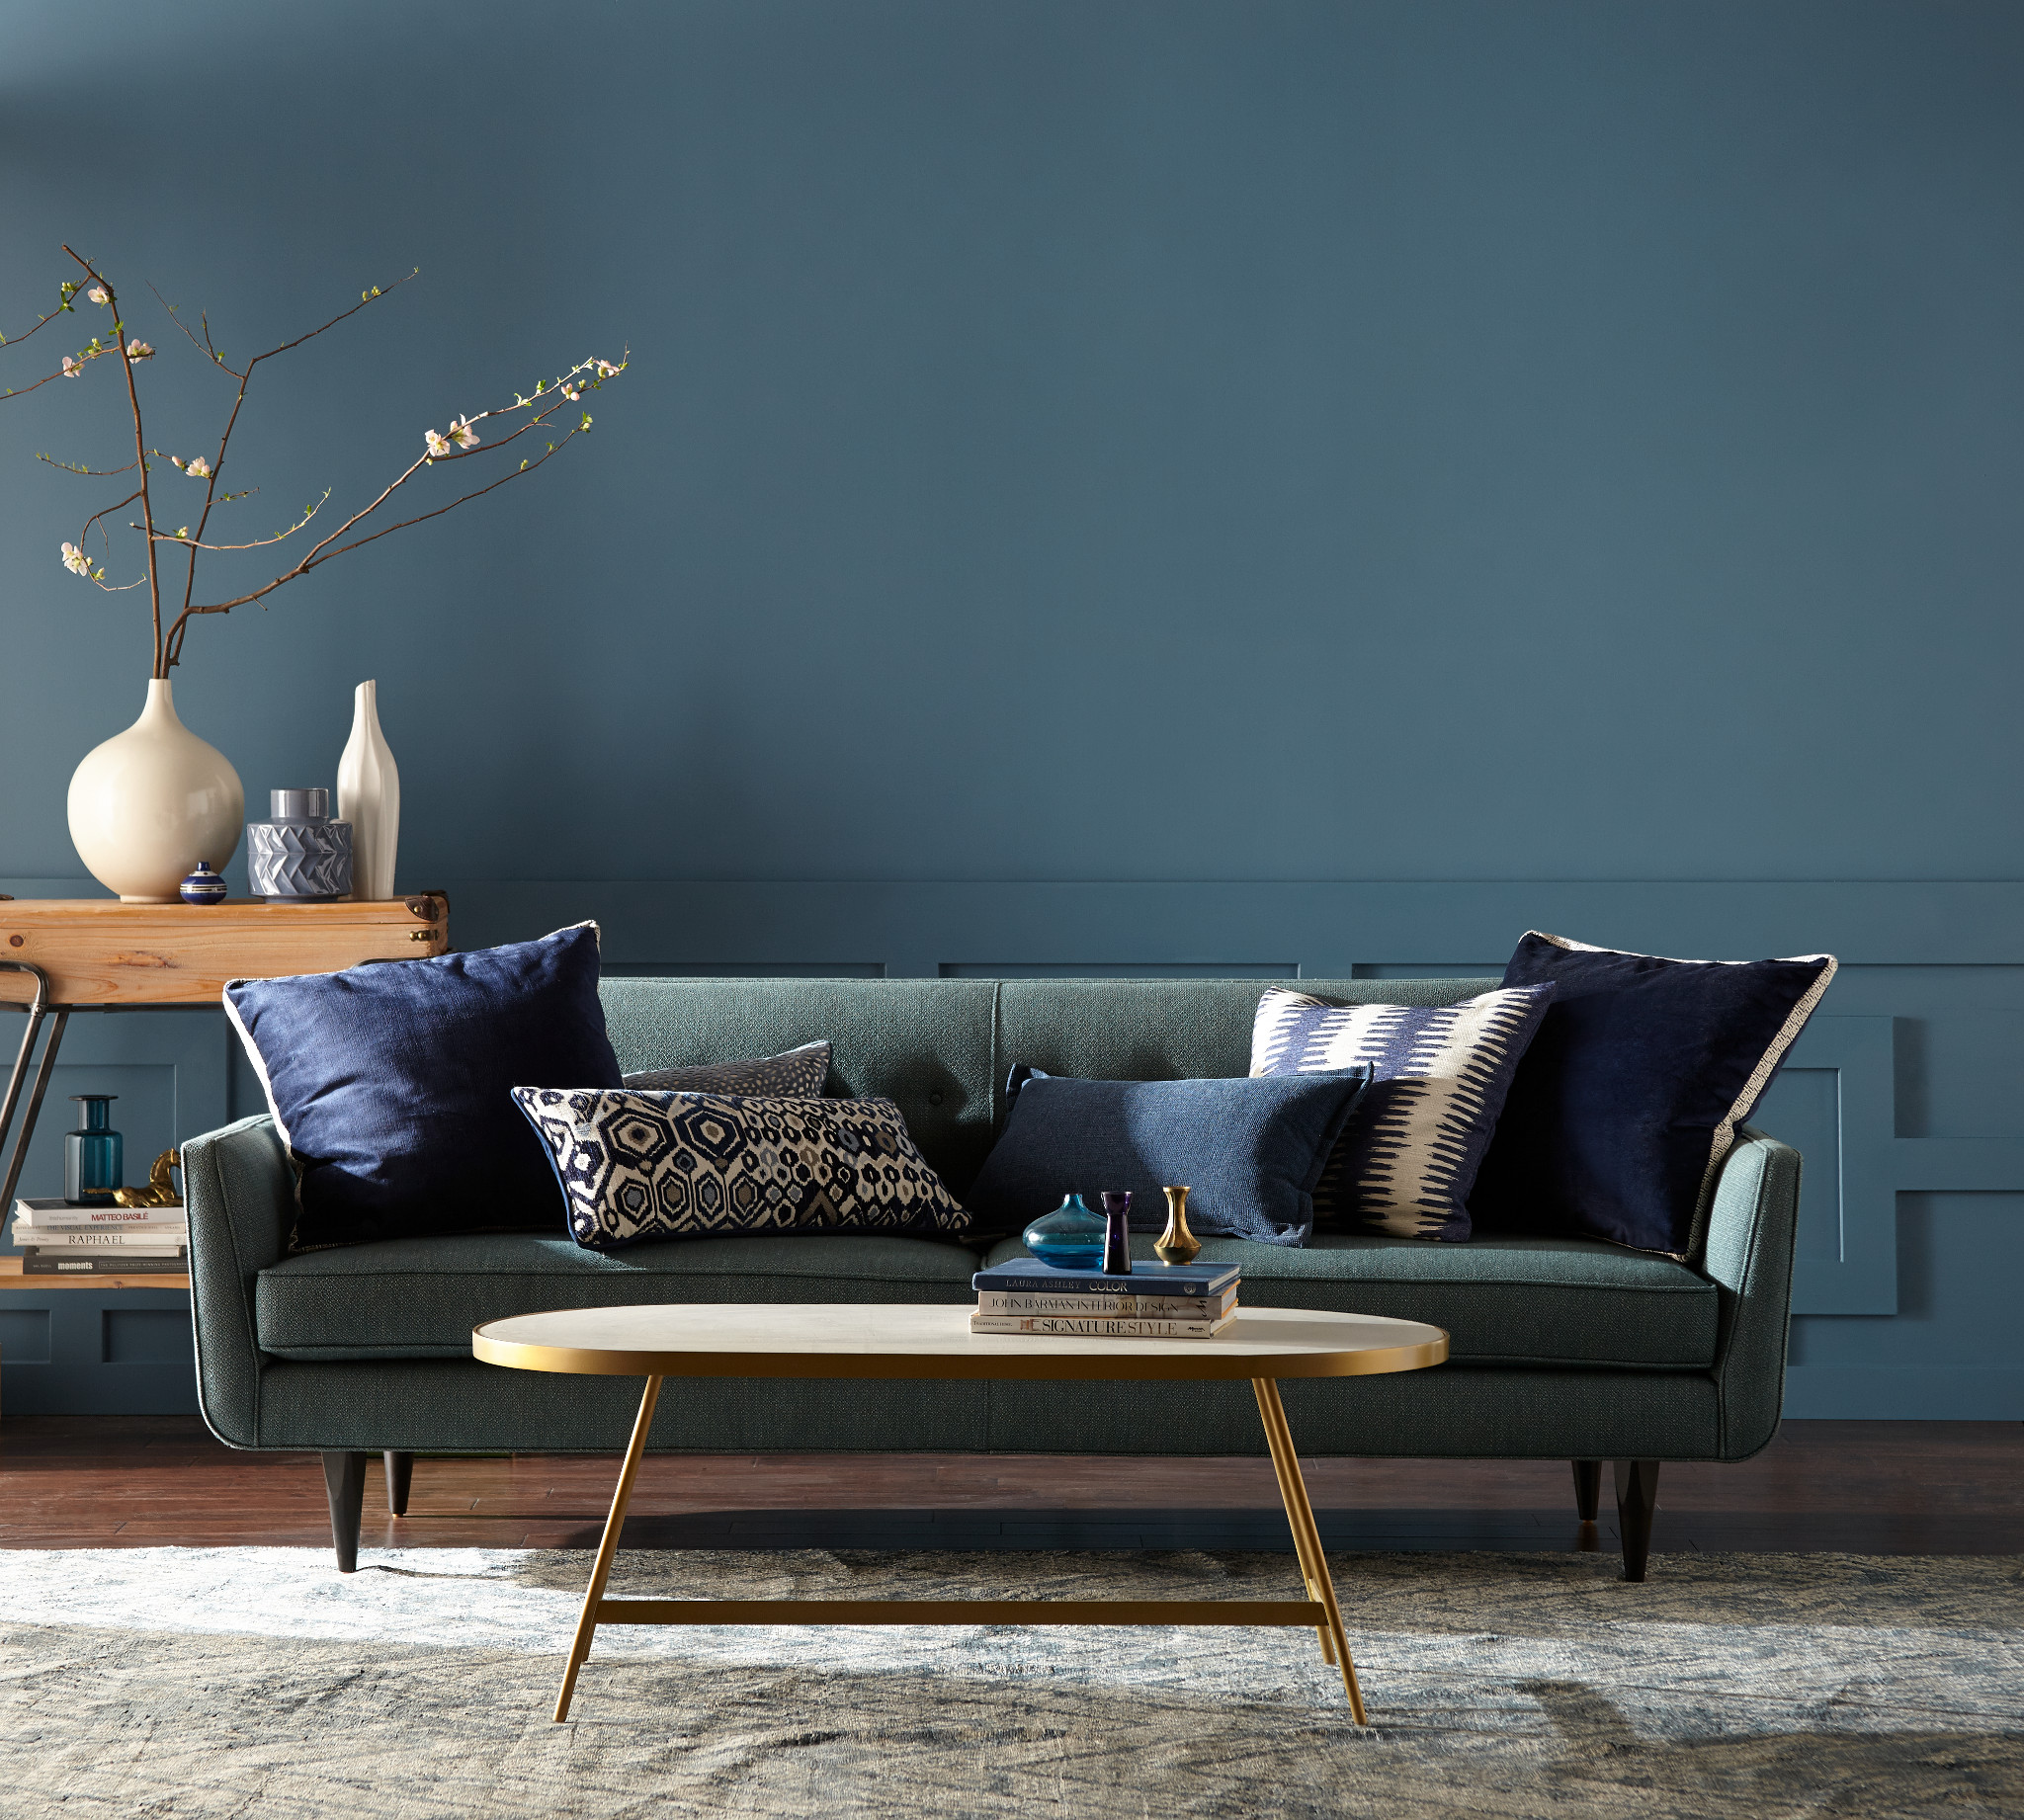 Behr Paint S 2019 Color Of The Year Is Blueprint And It S So Chic 2019 Paint Color Trends